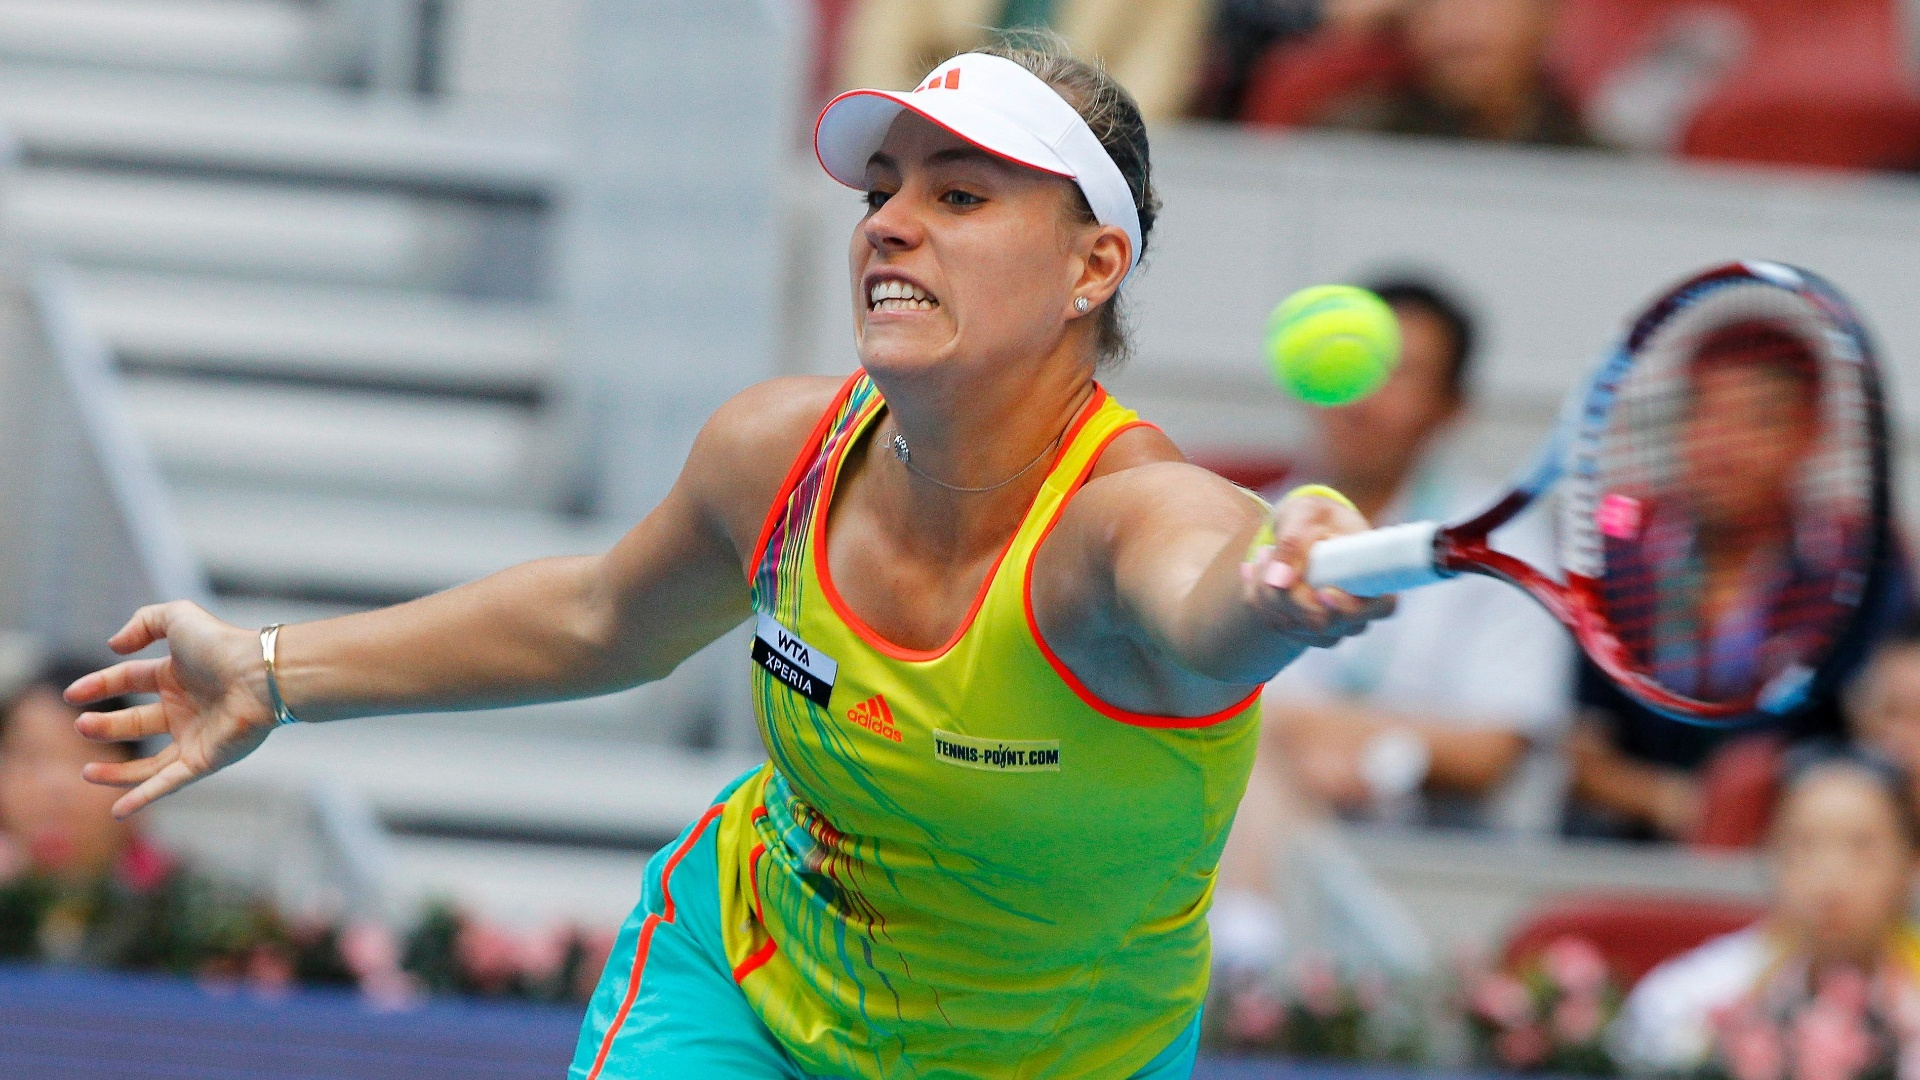 Alem Angelique Kerber se estica para alcanar a bola em lance da partida contra a russa Maria Sharapova nas quartas de final do Torneio de Pequim (05/10/2012)